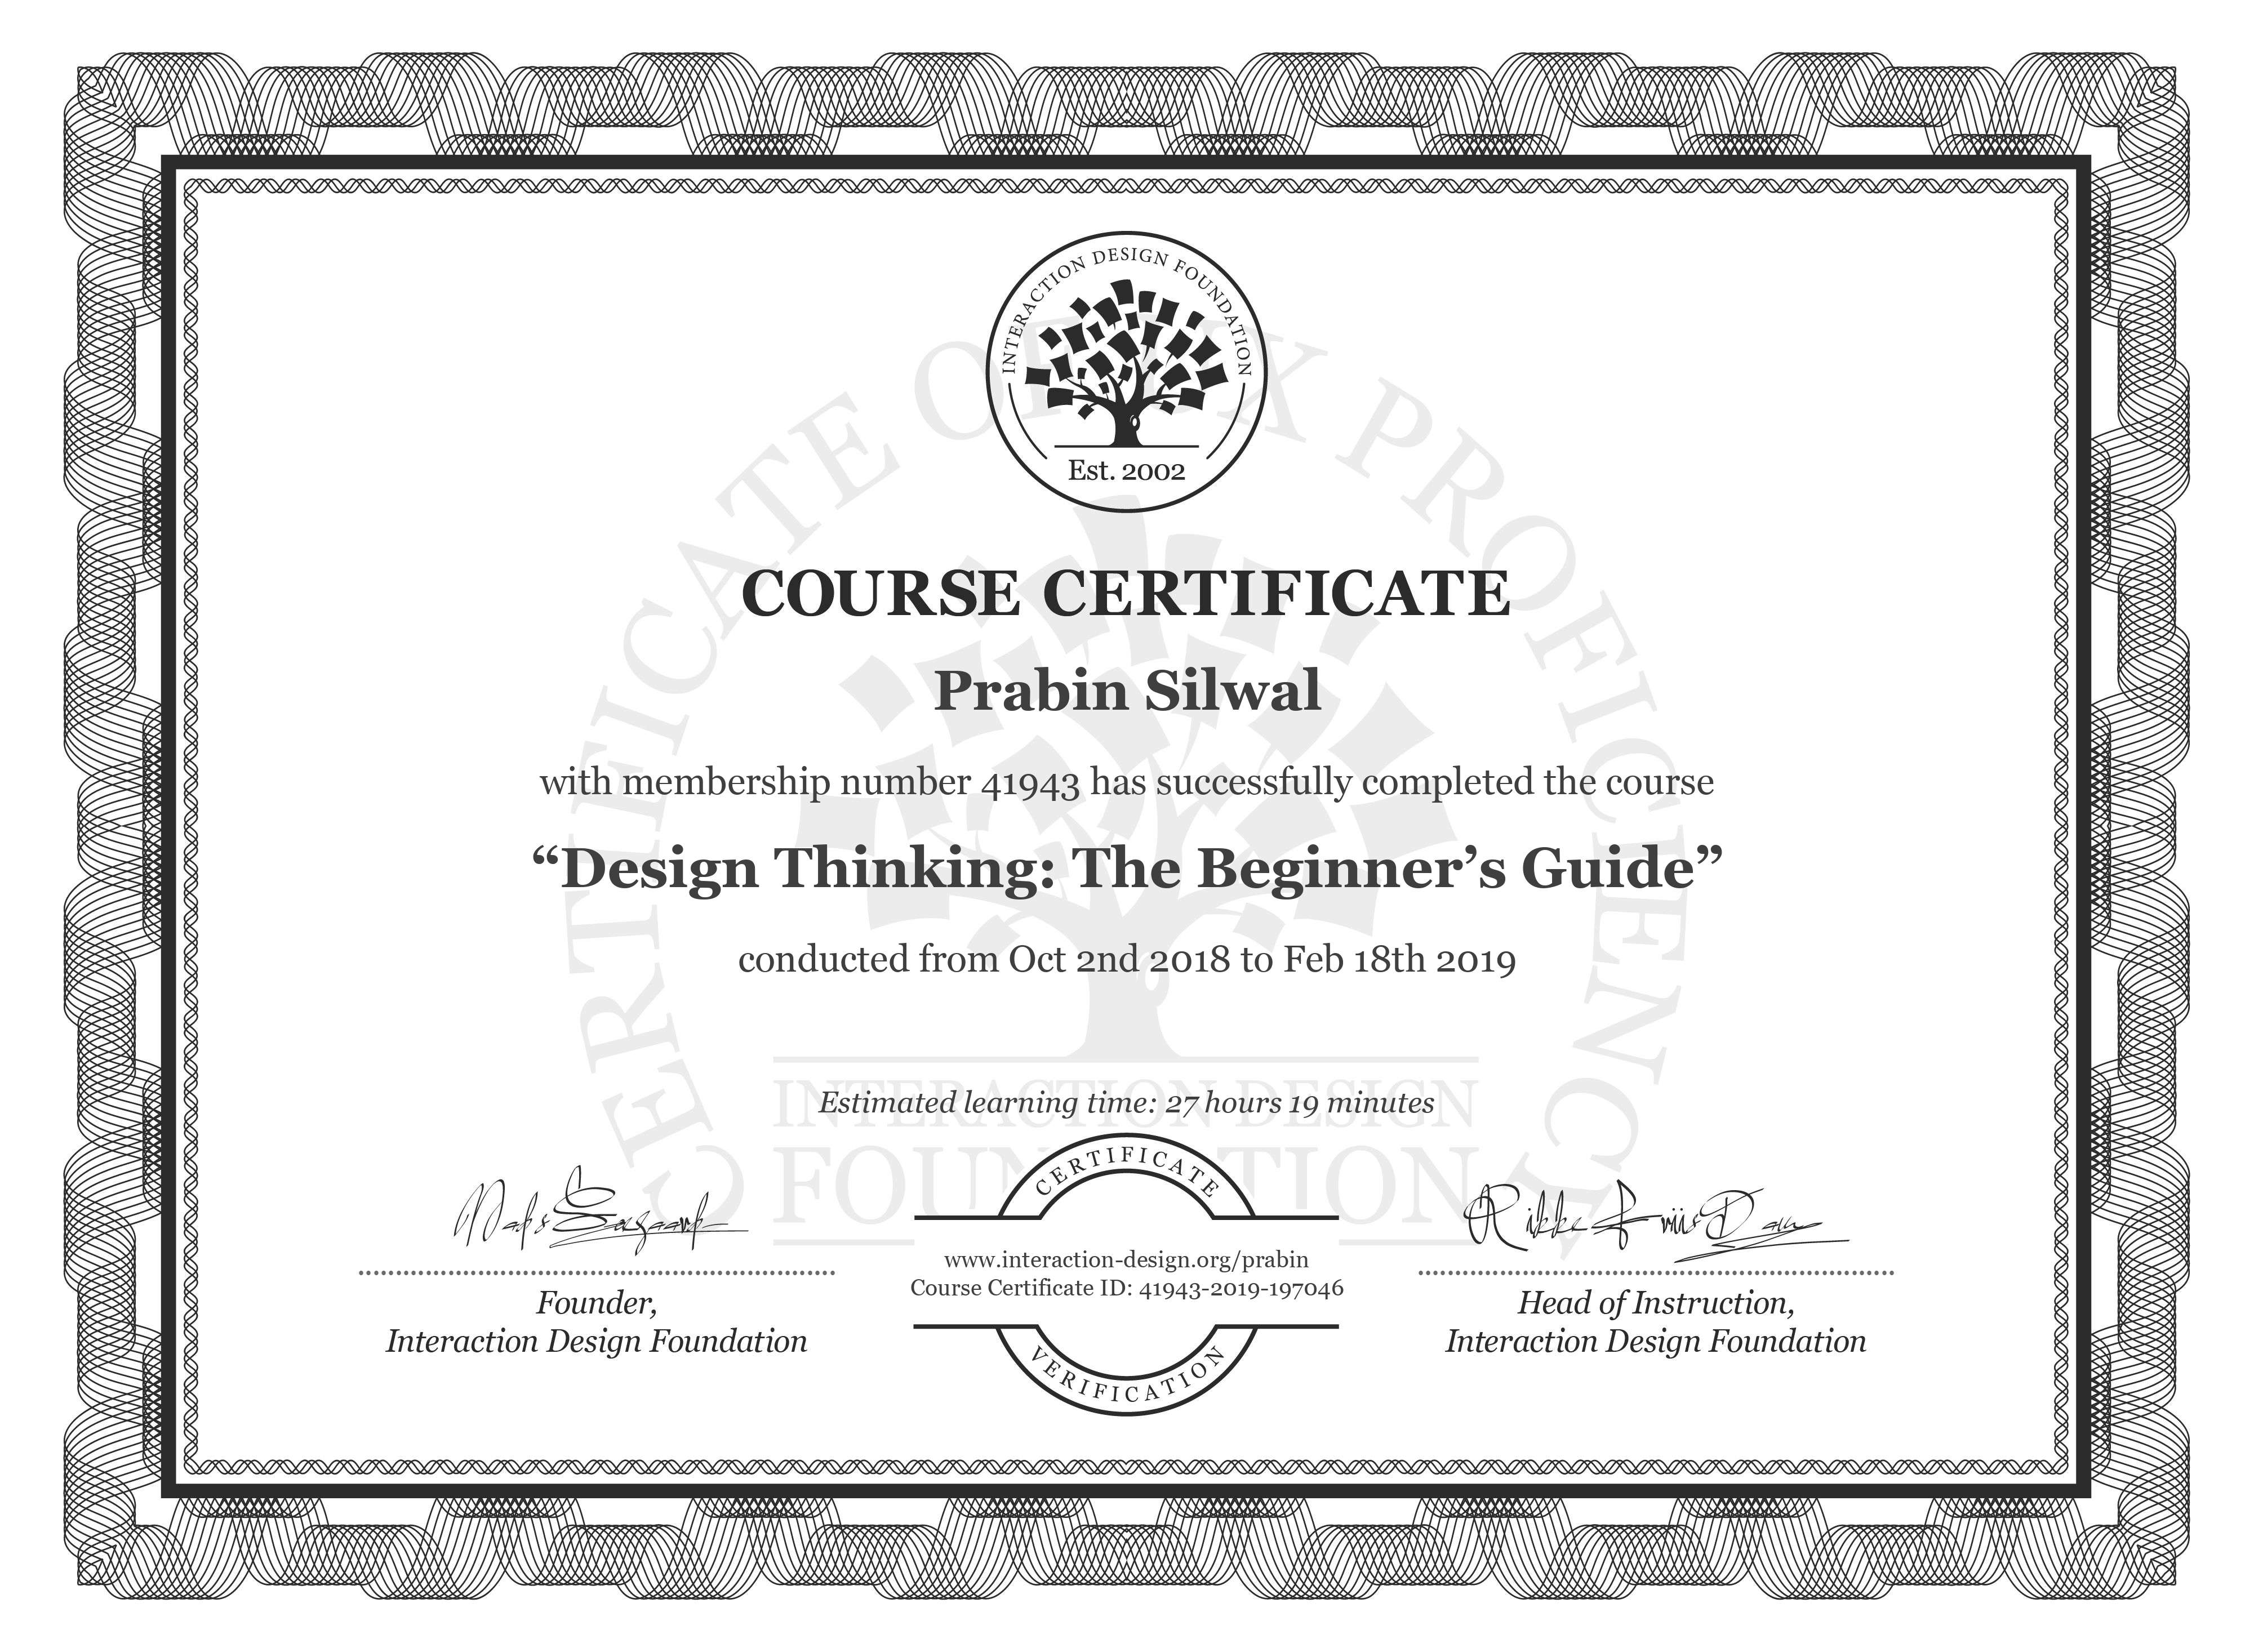 Prabin Silwal: Course Certificate - Design Thinking: The Beginner's Guide